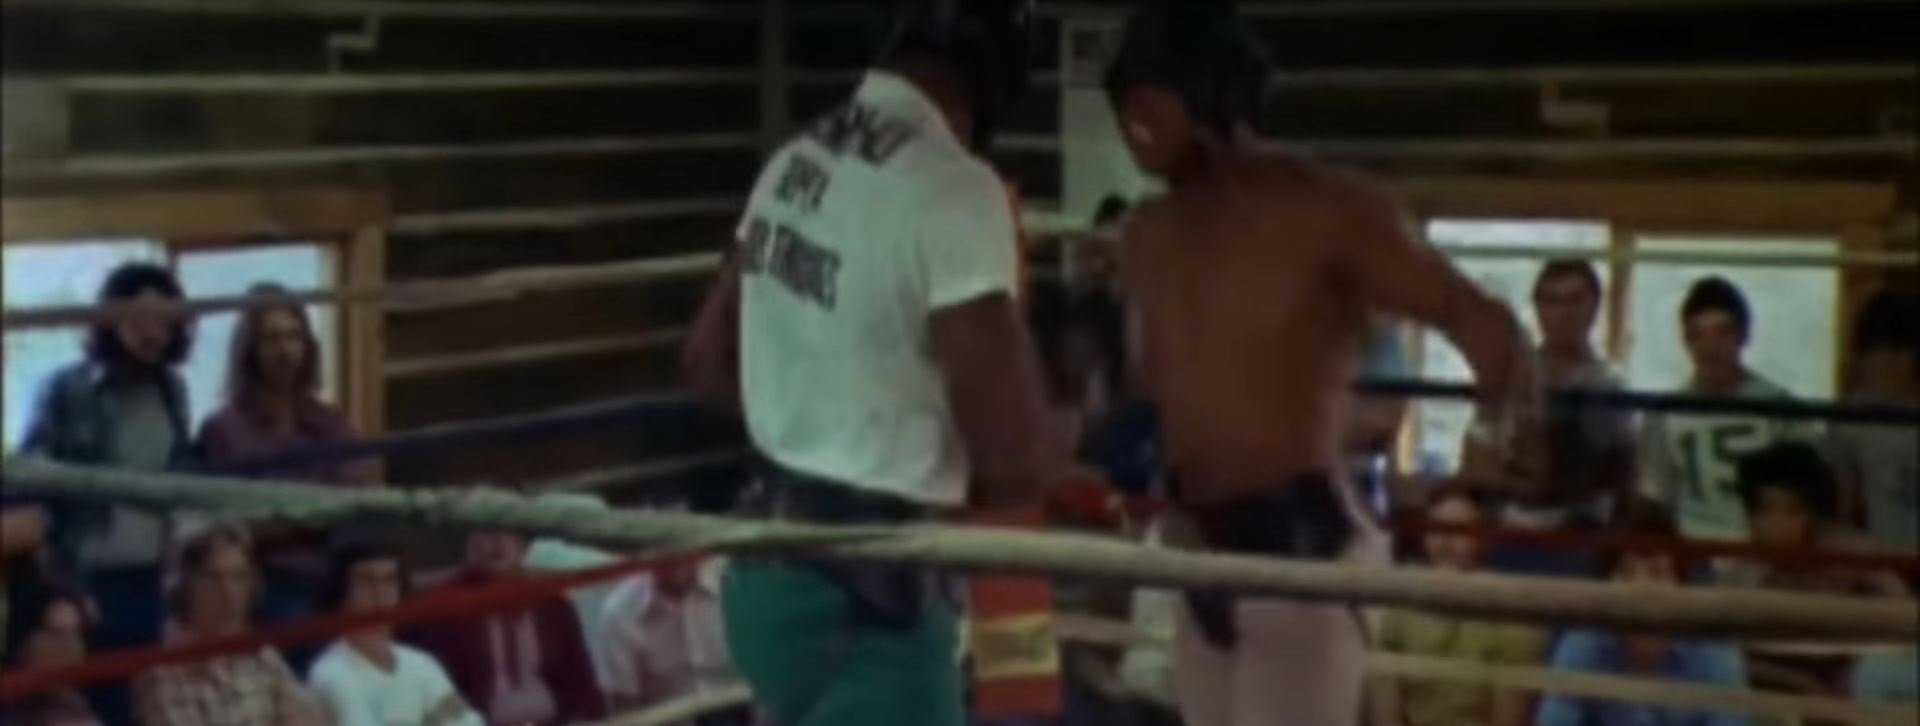 The Most Important Punch In Boxing and The Man Who Embodied It Best